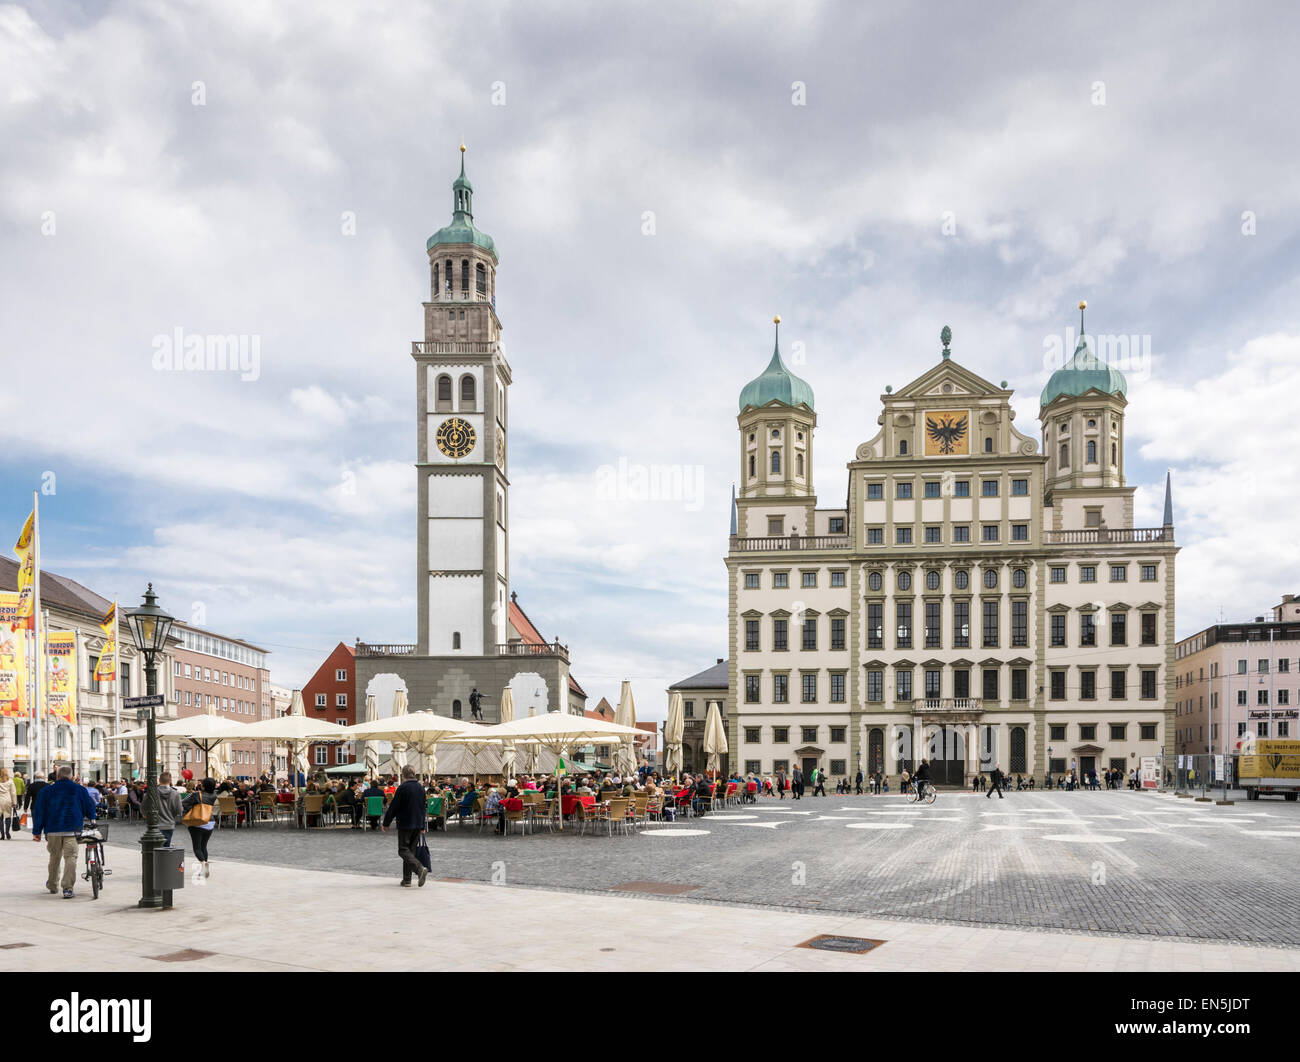 AUGSBURG, GERMANY - APRIL 11: Tourists at the Rathausplatz in Augsburg, Germany on April 11, 2015. - Stock Image